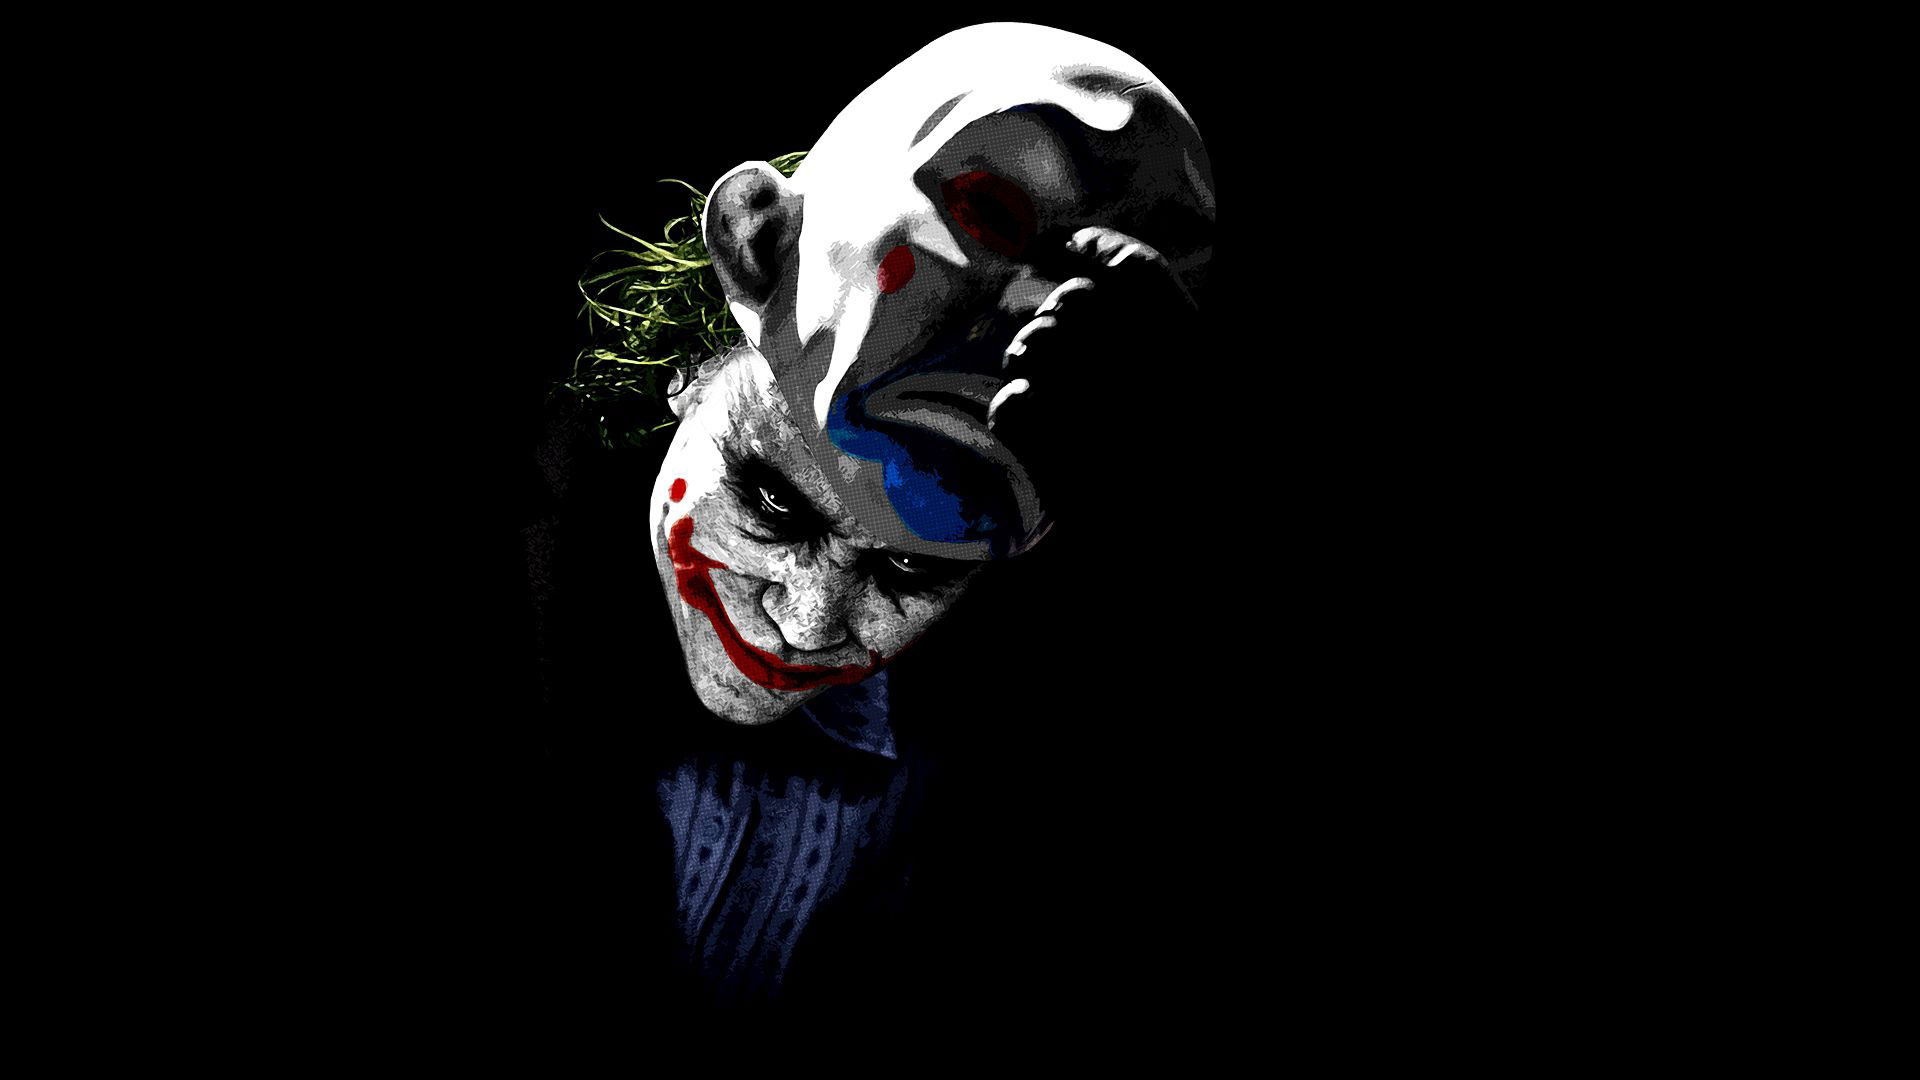 The Joker   The Dark Knight wallpaper 20431 1920x1080